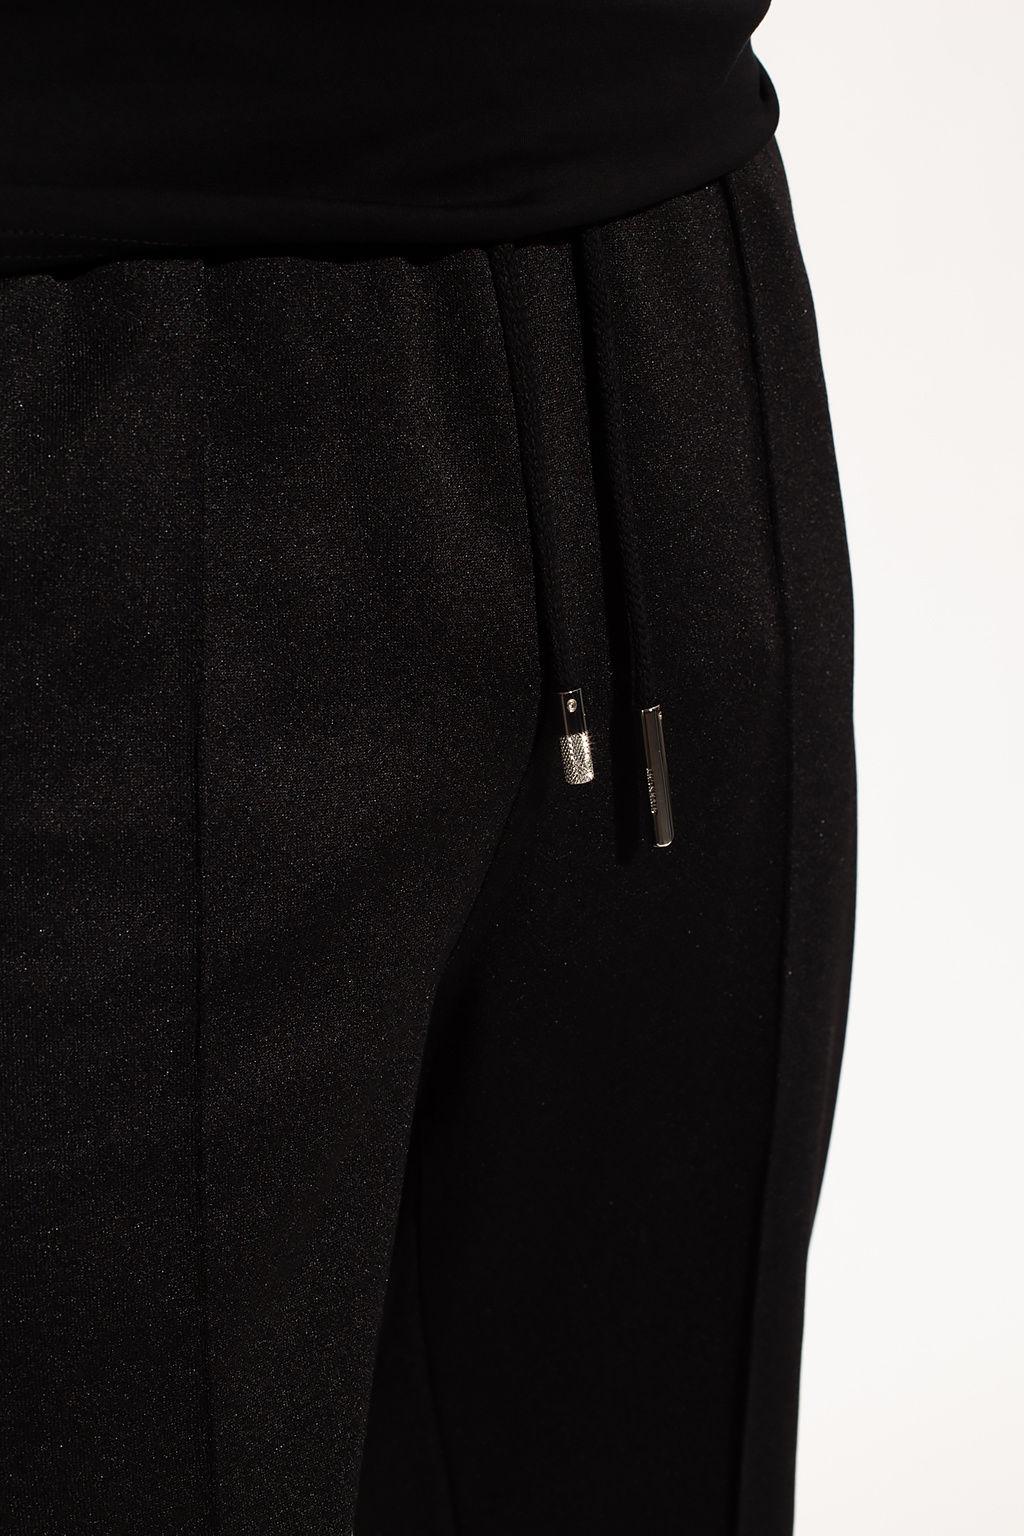 Givenchy Trousers with logo